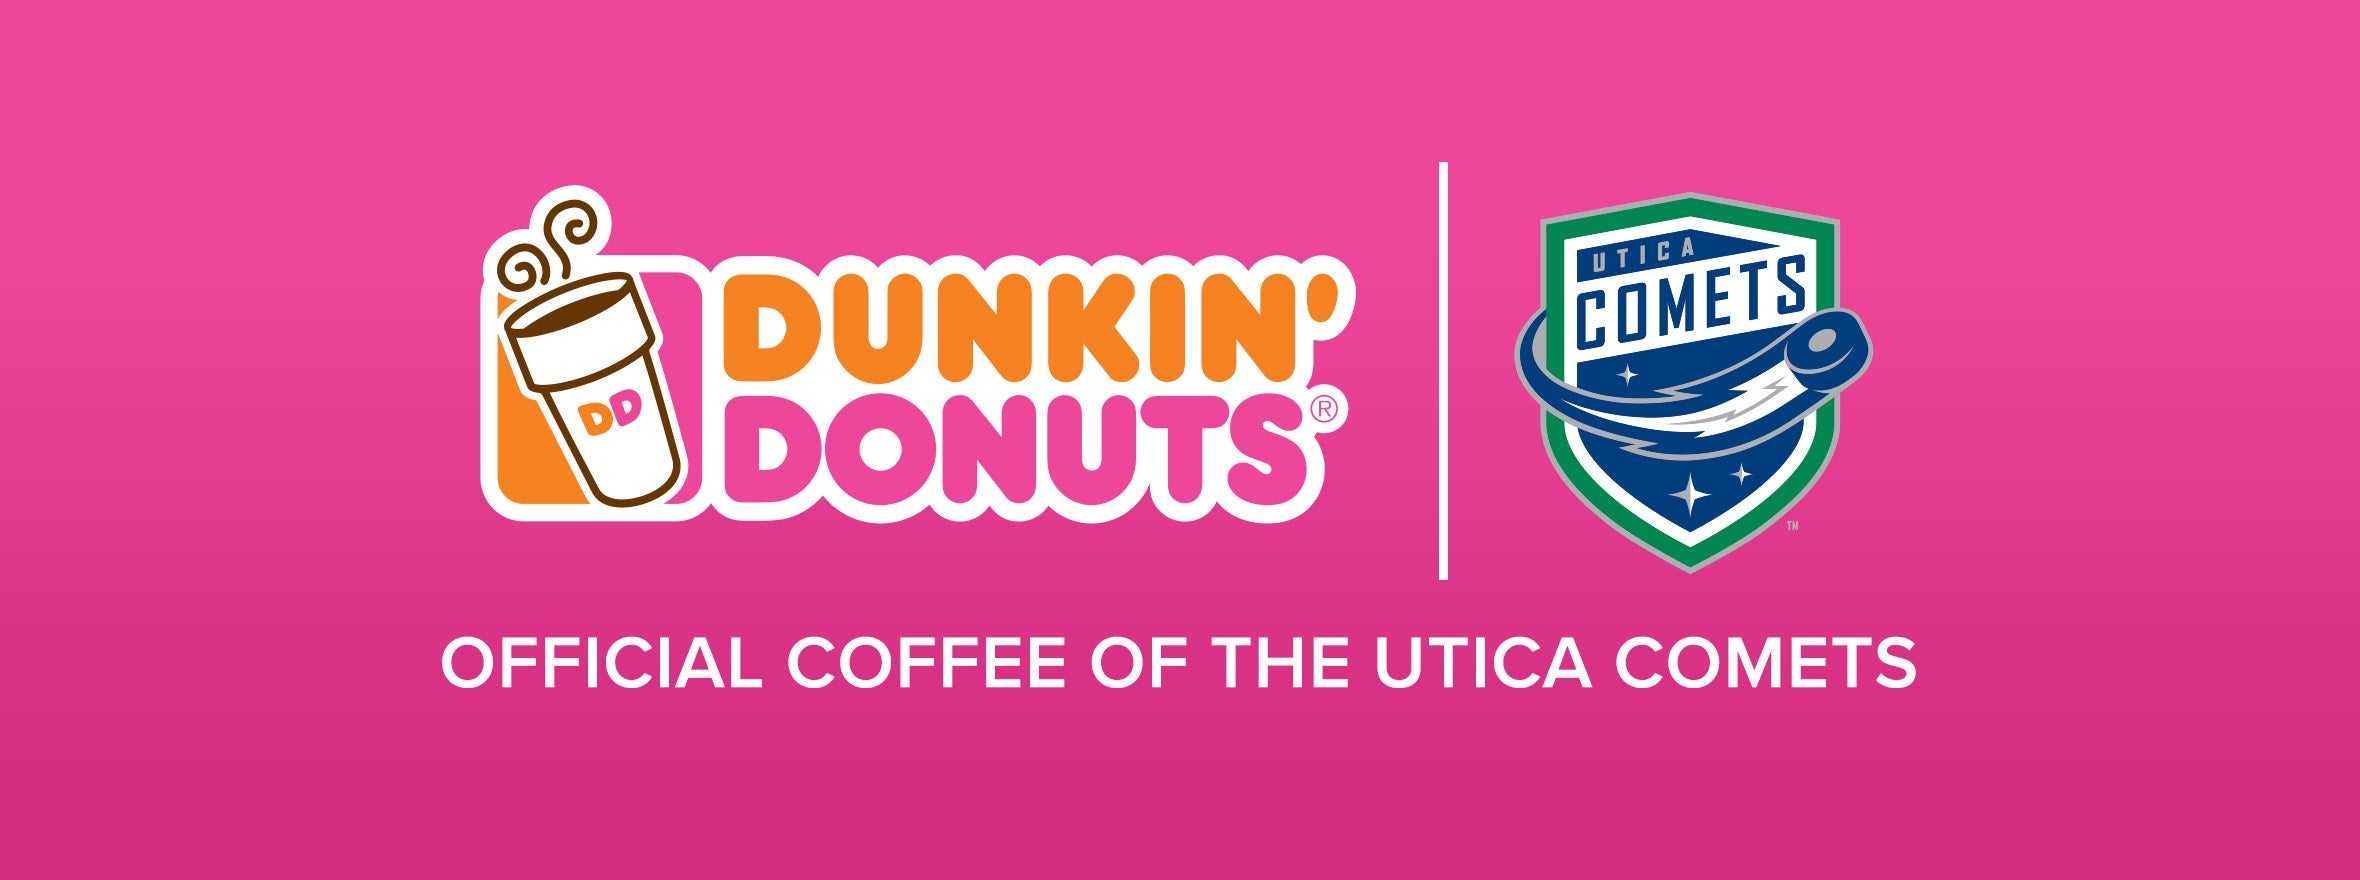 DUNKIN DONUTS NAMED OFFICIAL COFFEE